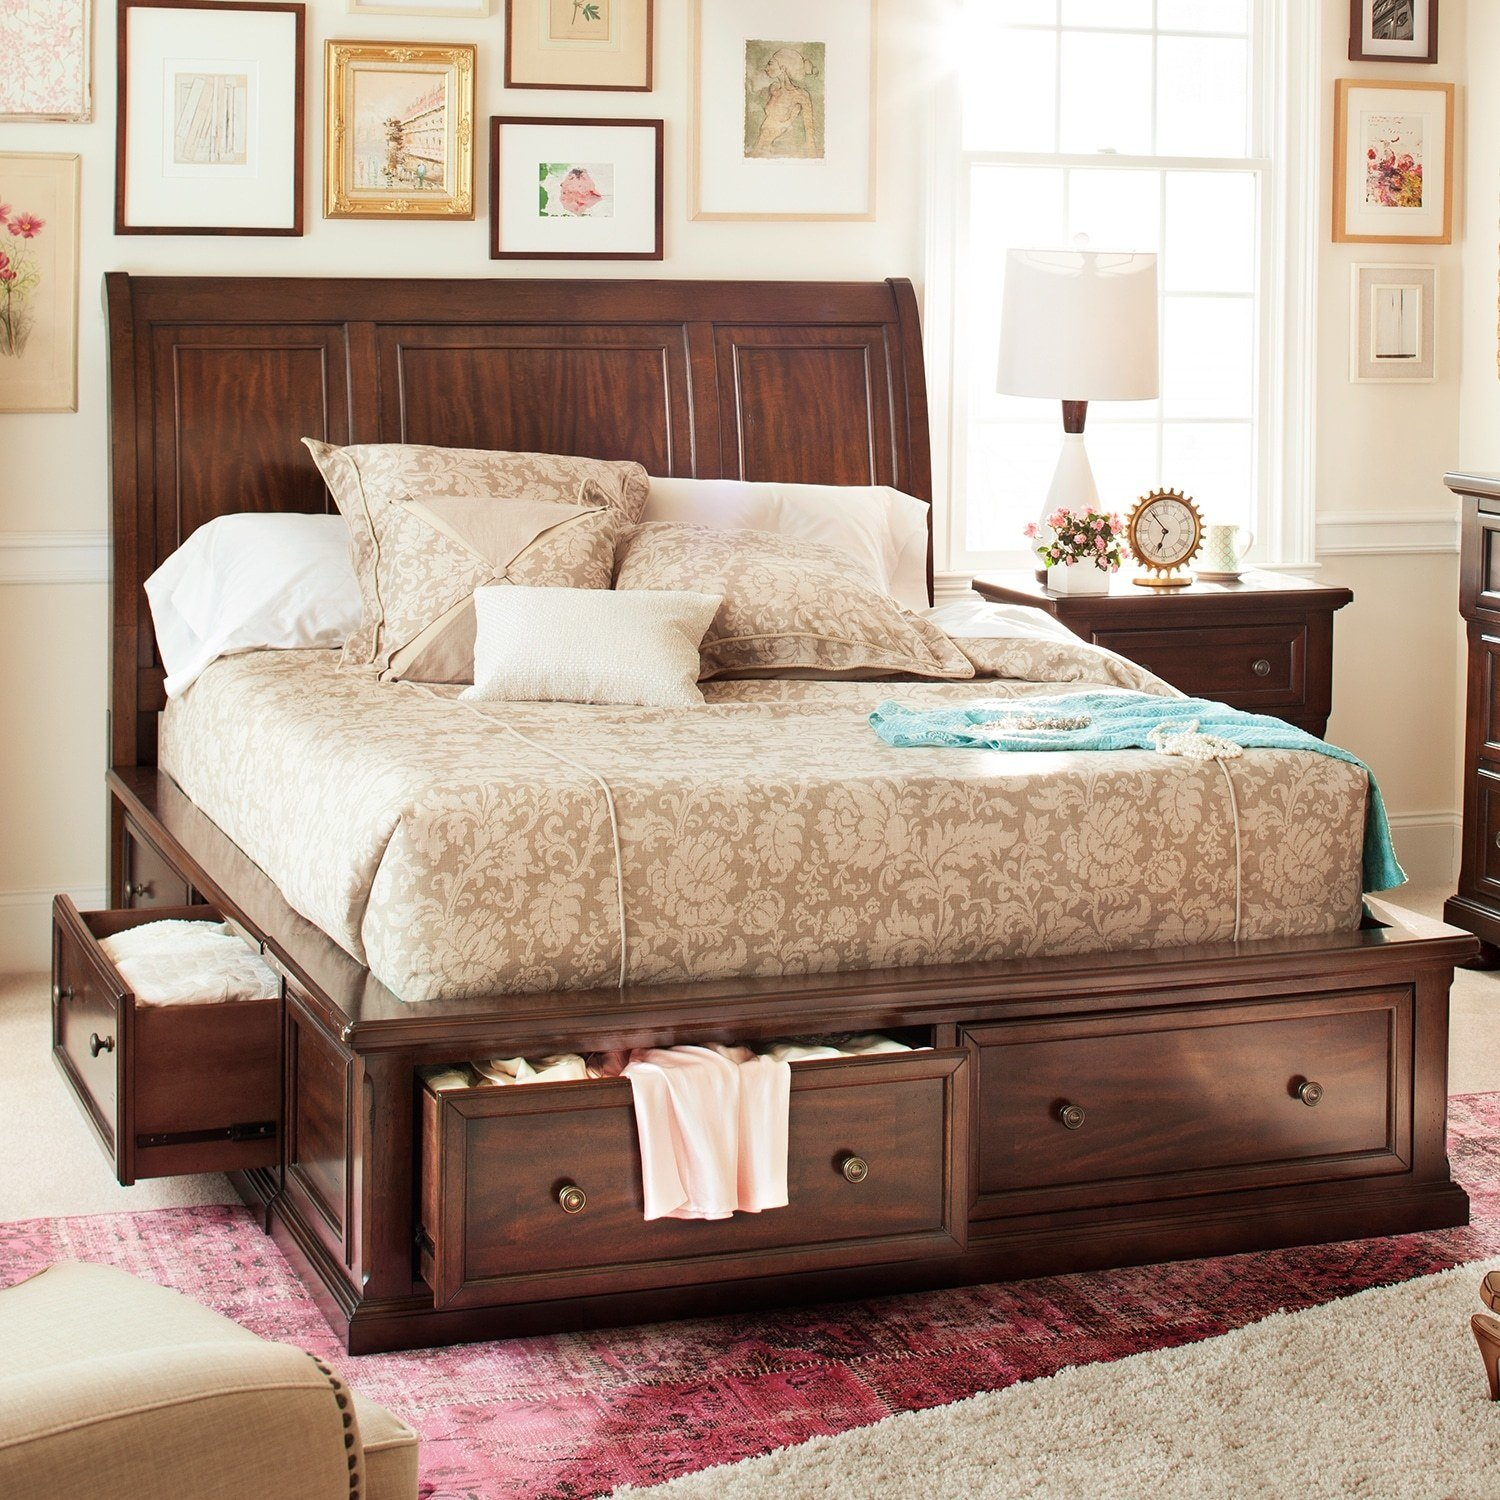 Best Hanover Queen Storage Bed Value City Furniture With Pictures